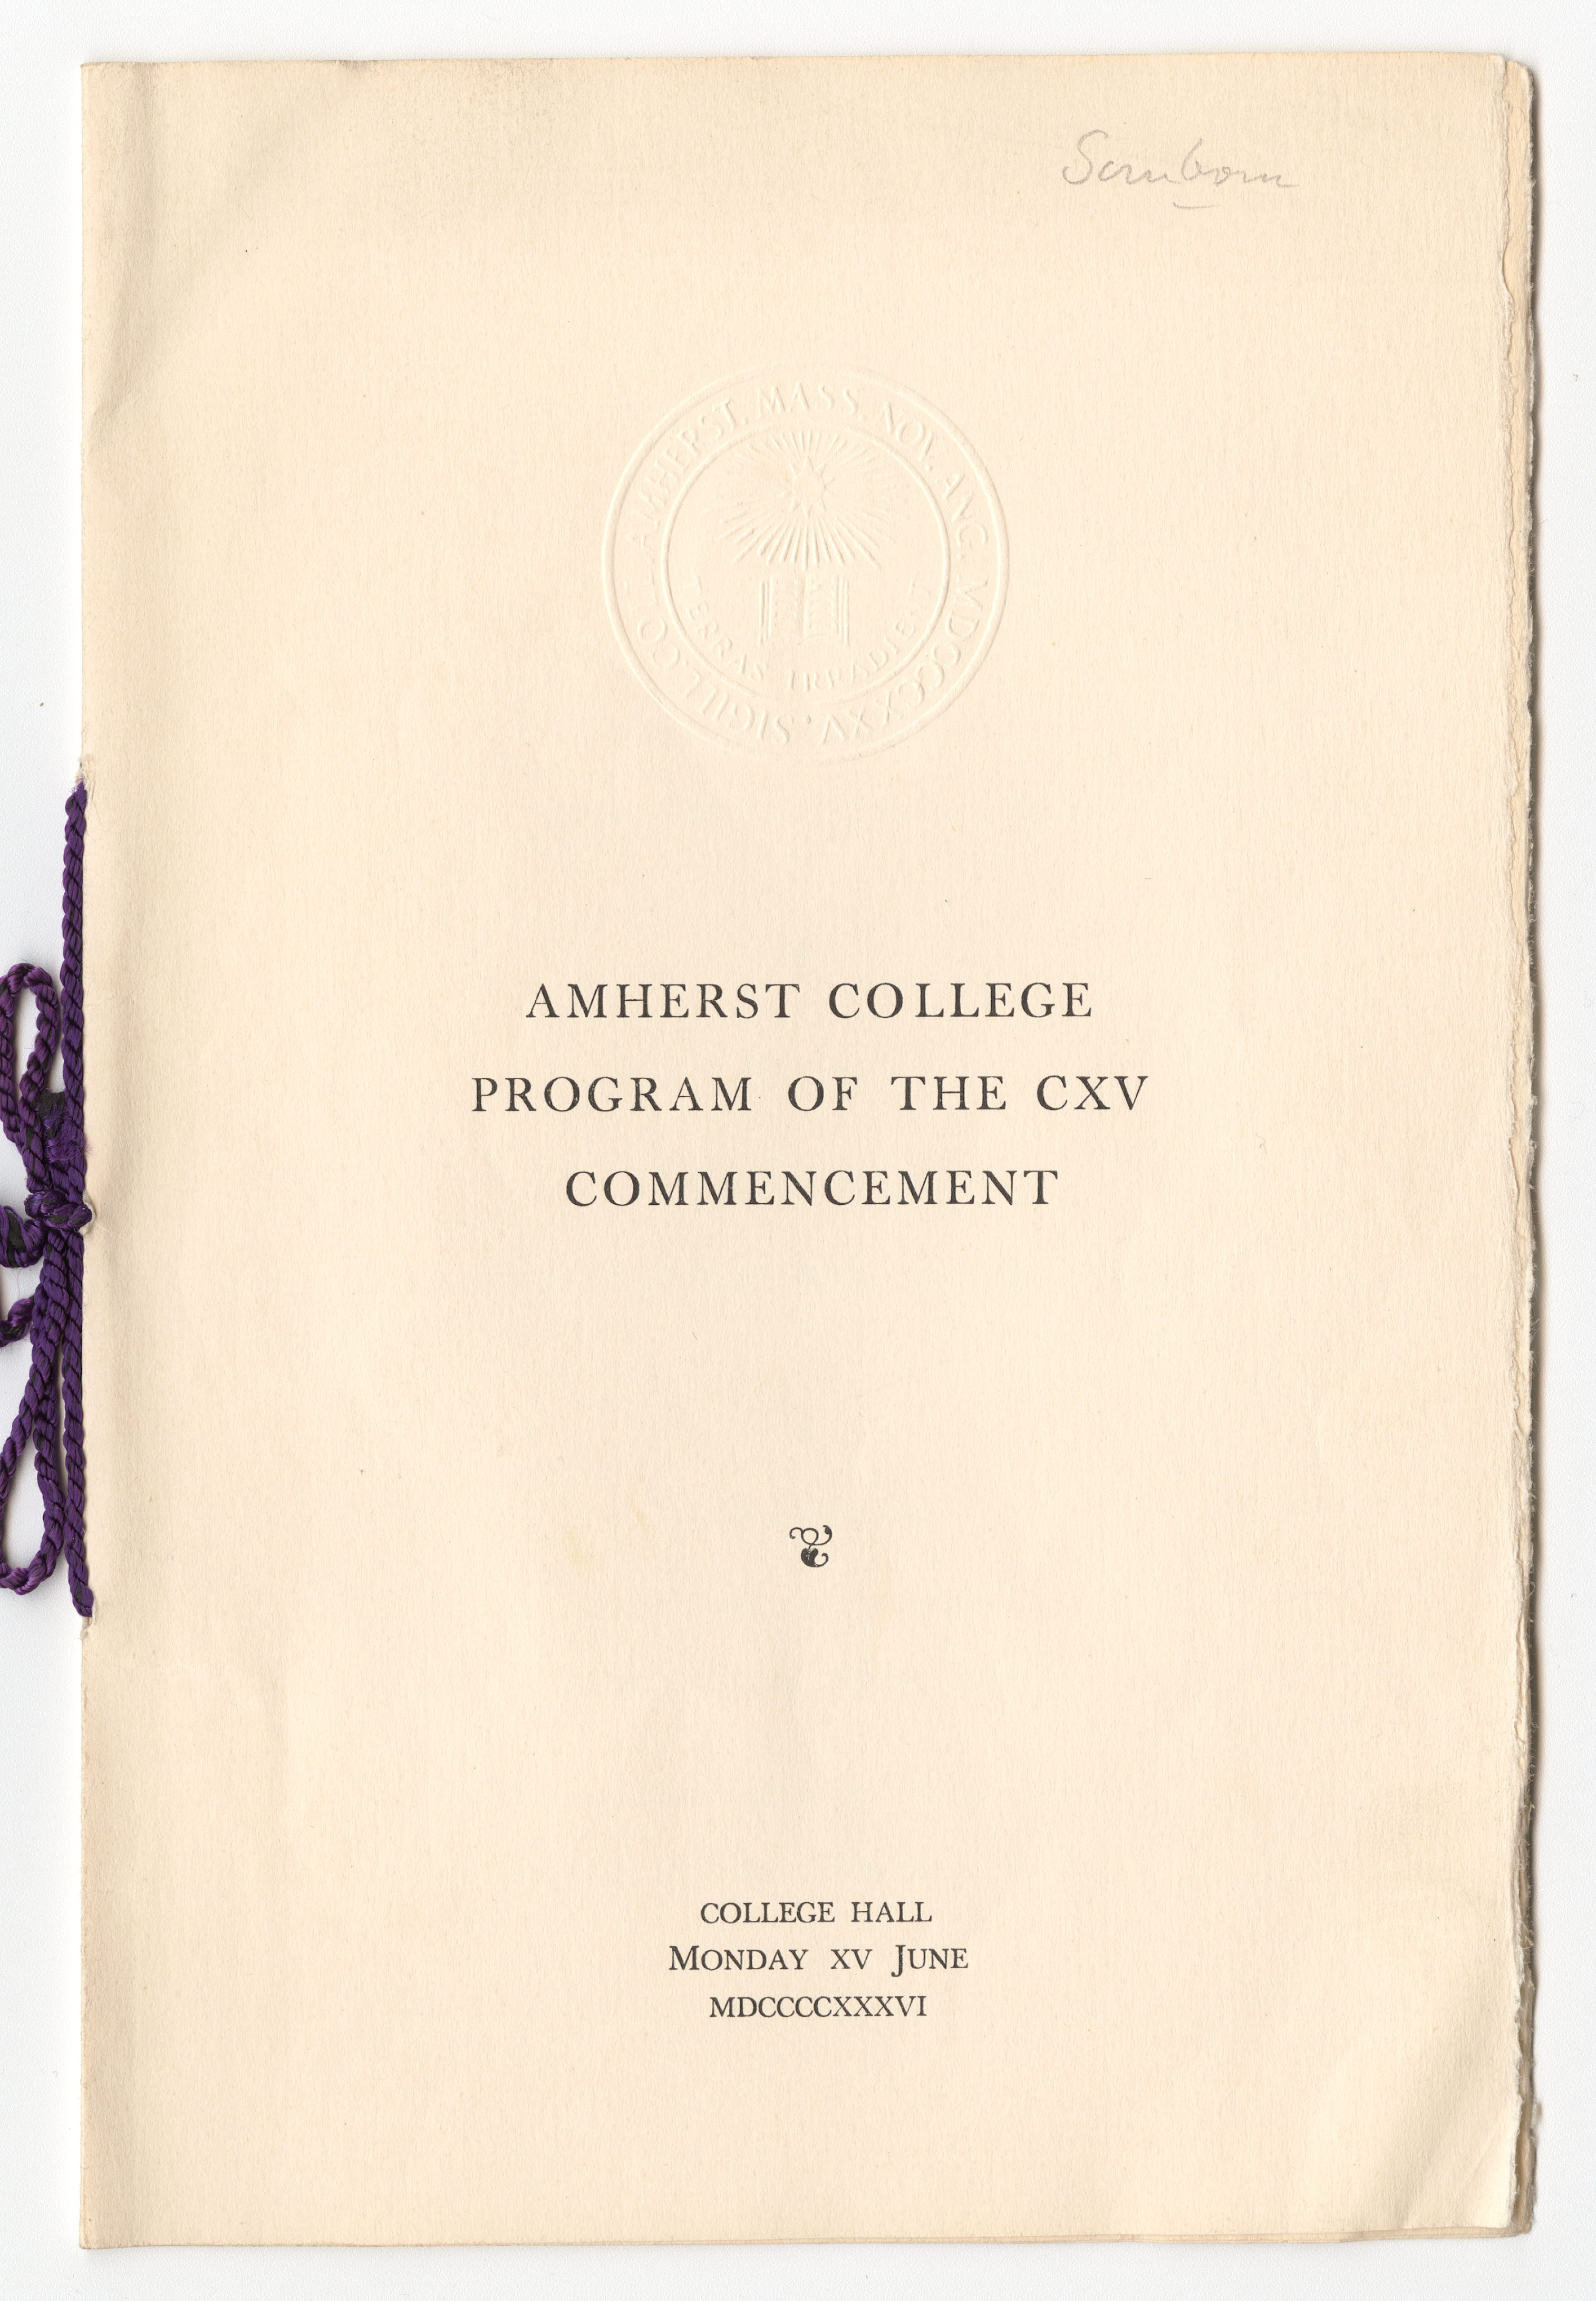 Program of the 1936 Amherst College commencement ceremony